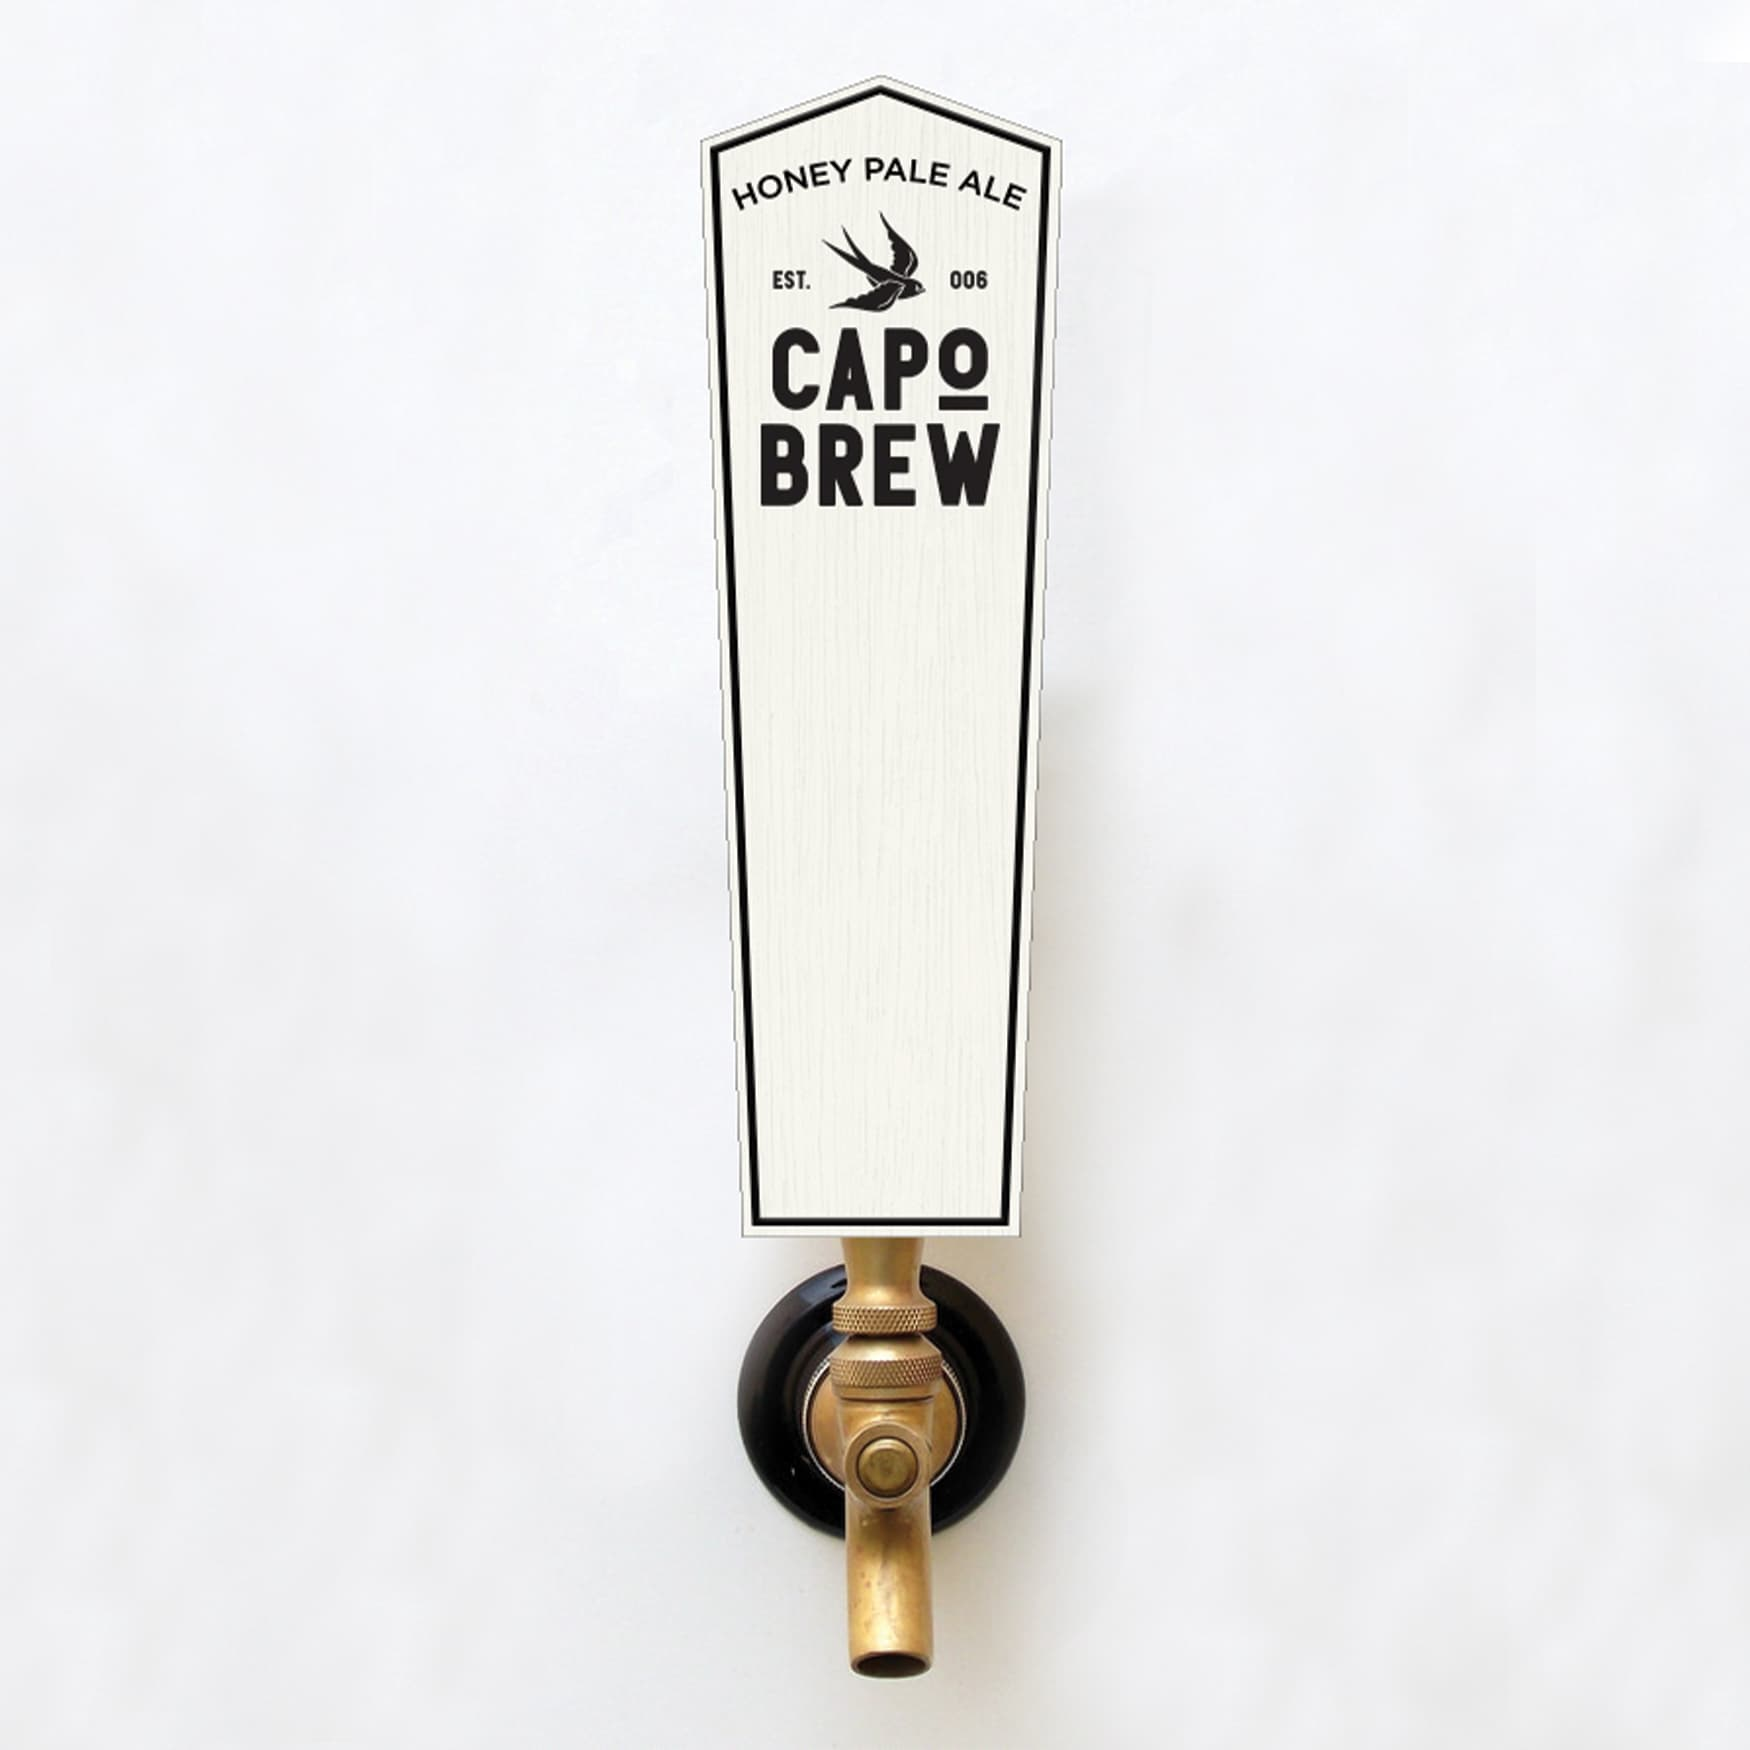 Capo Brew branded pint glass being filled with a beverage